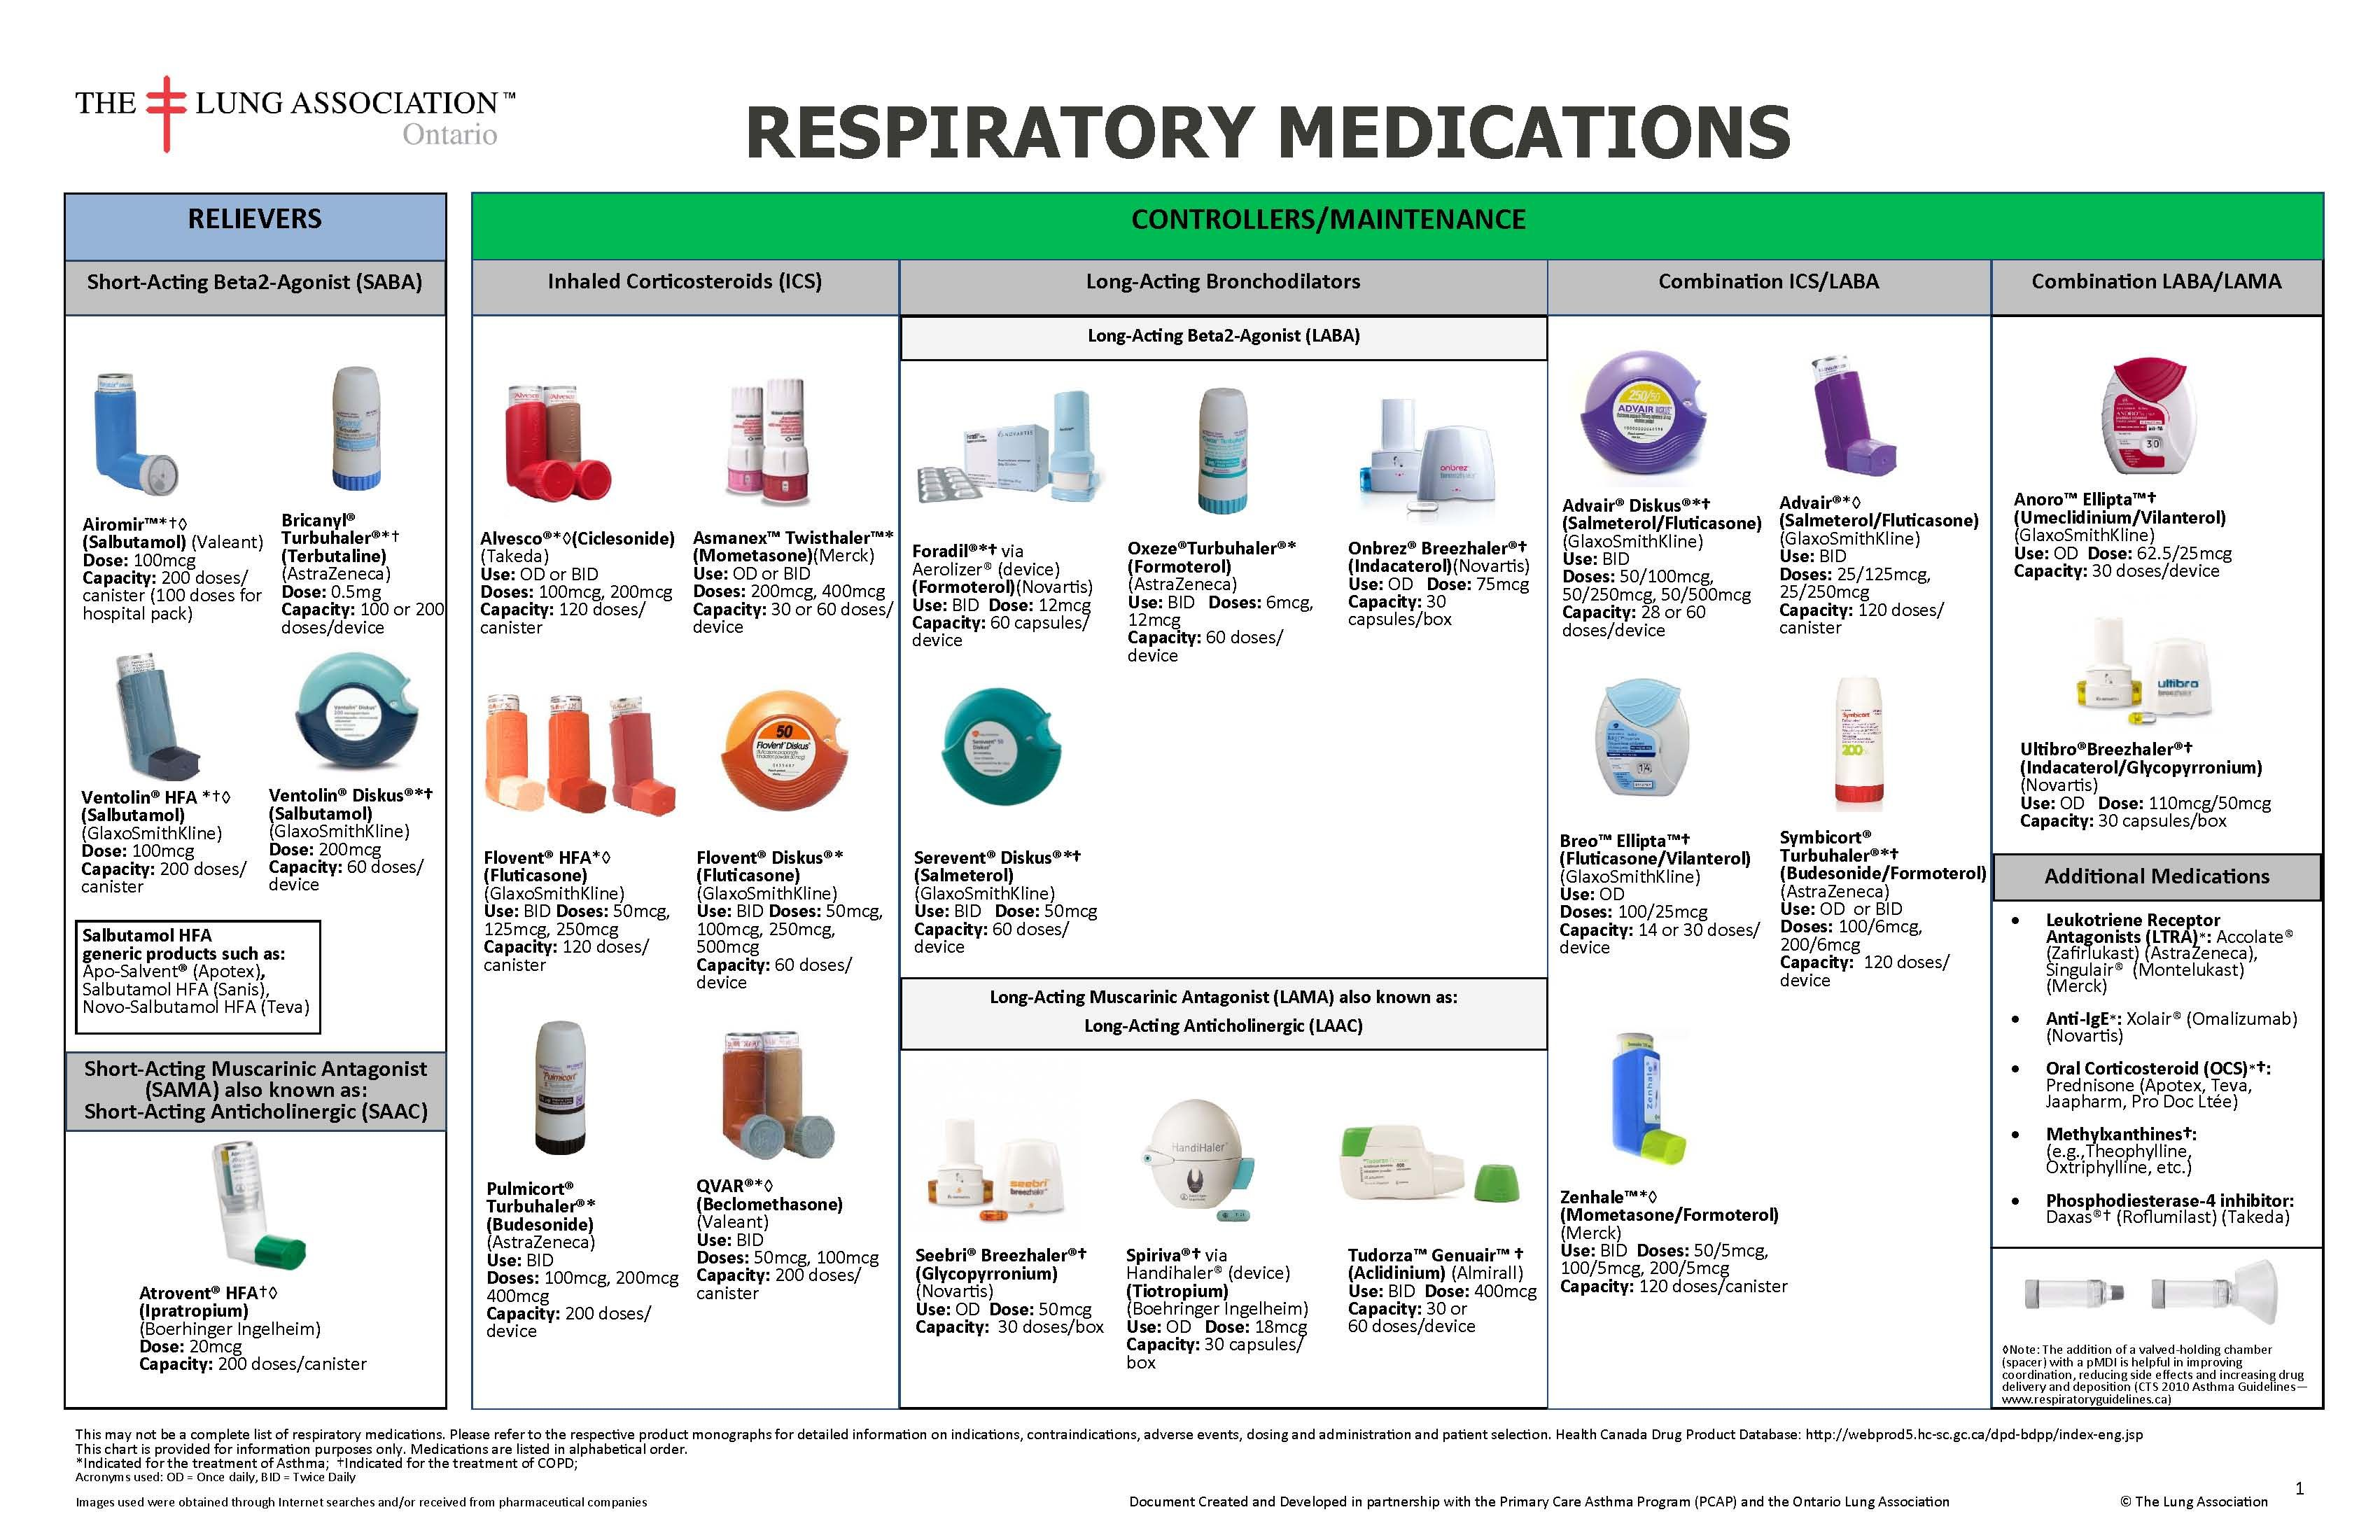 asthma brochure template - copd medications chart management strategies in stable